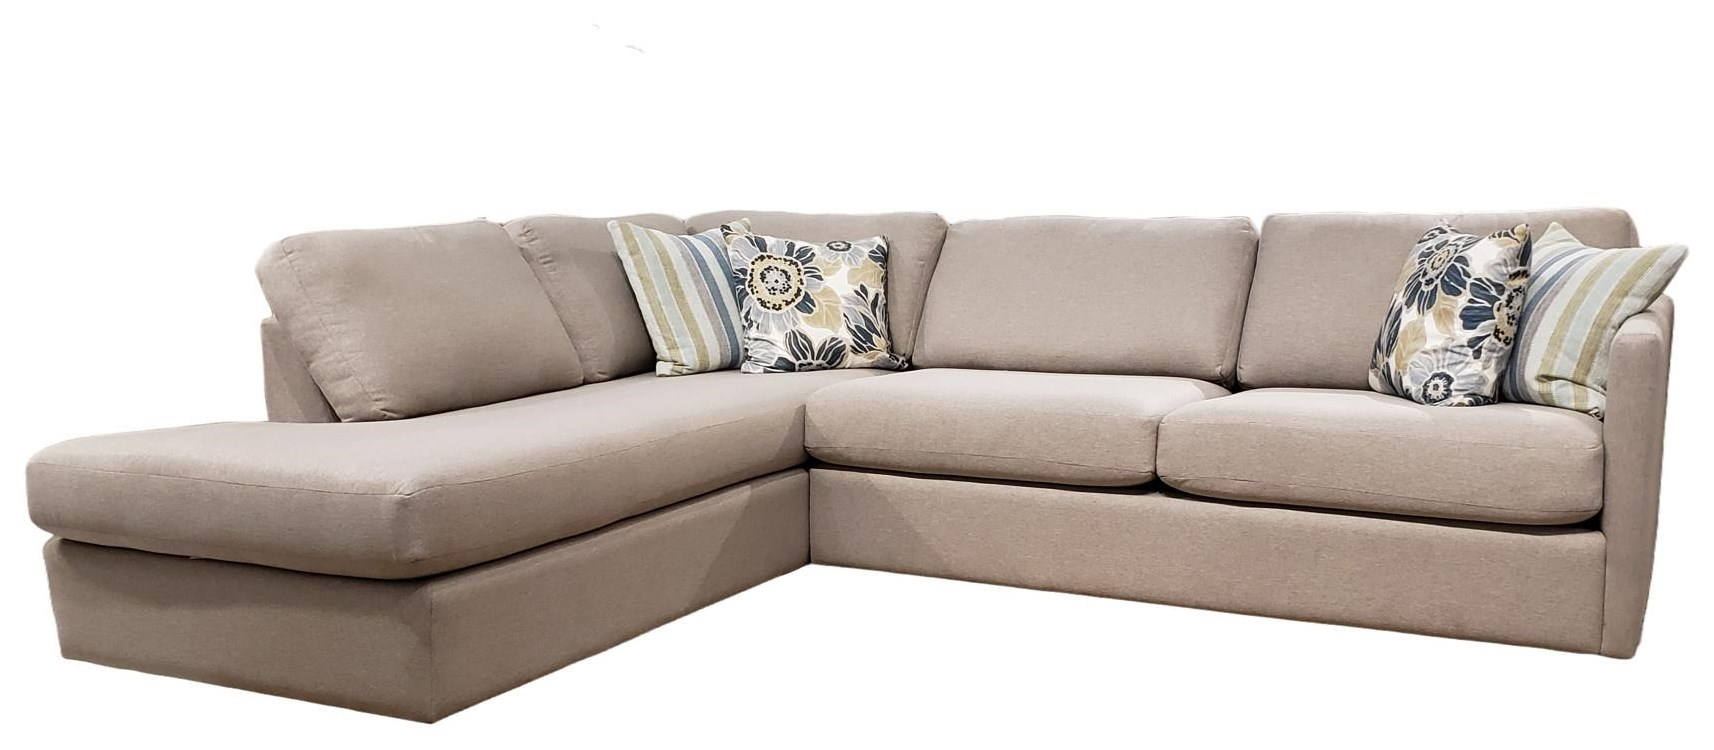 2068 2068 2pc. Sectional by Decor-Rest at Upper Room Home Furnishings